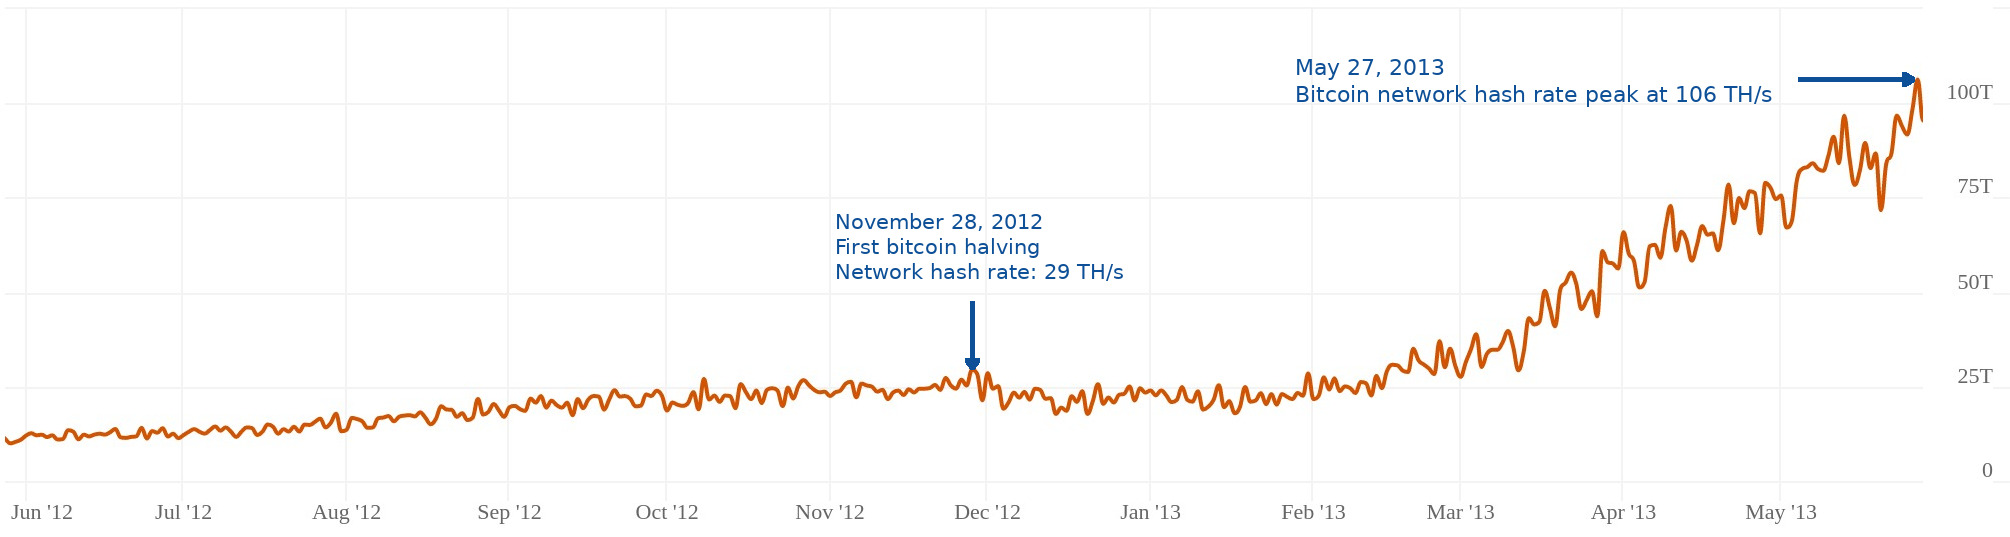 Bitcoin network hash rate activity from May 28, 2012 to May 28, 2013, with notations representing the first bitcoin halving event on November 28, 2012, and the peak network hash rate 6 months later